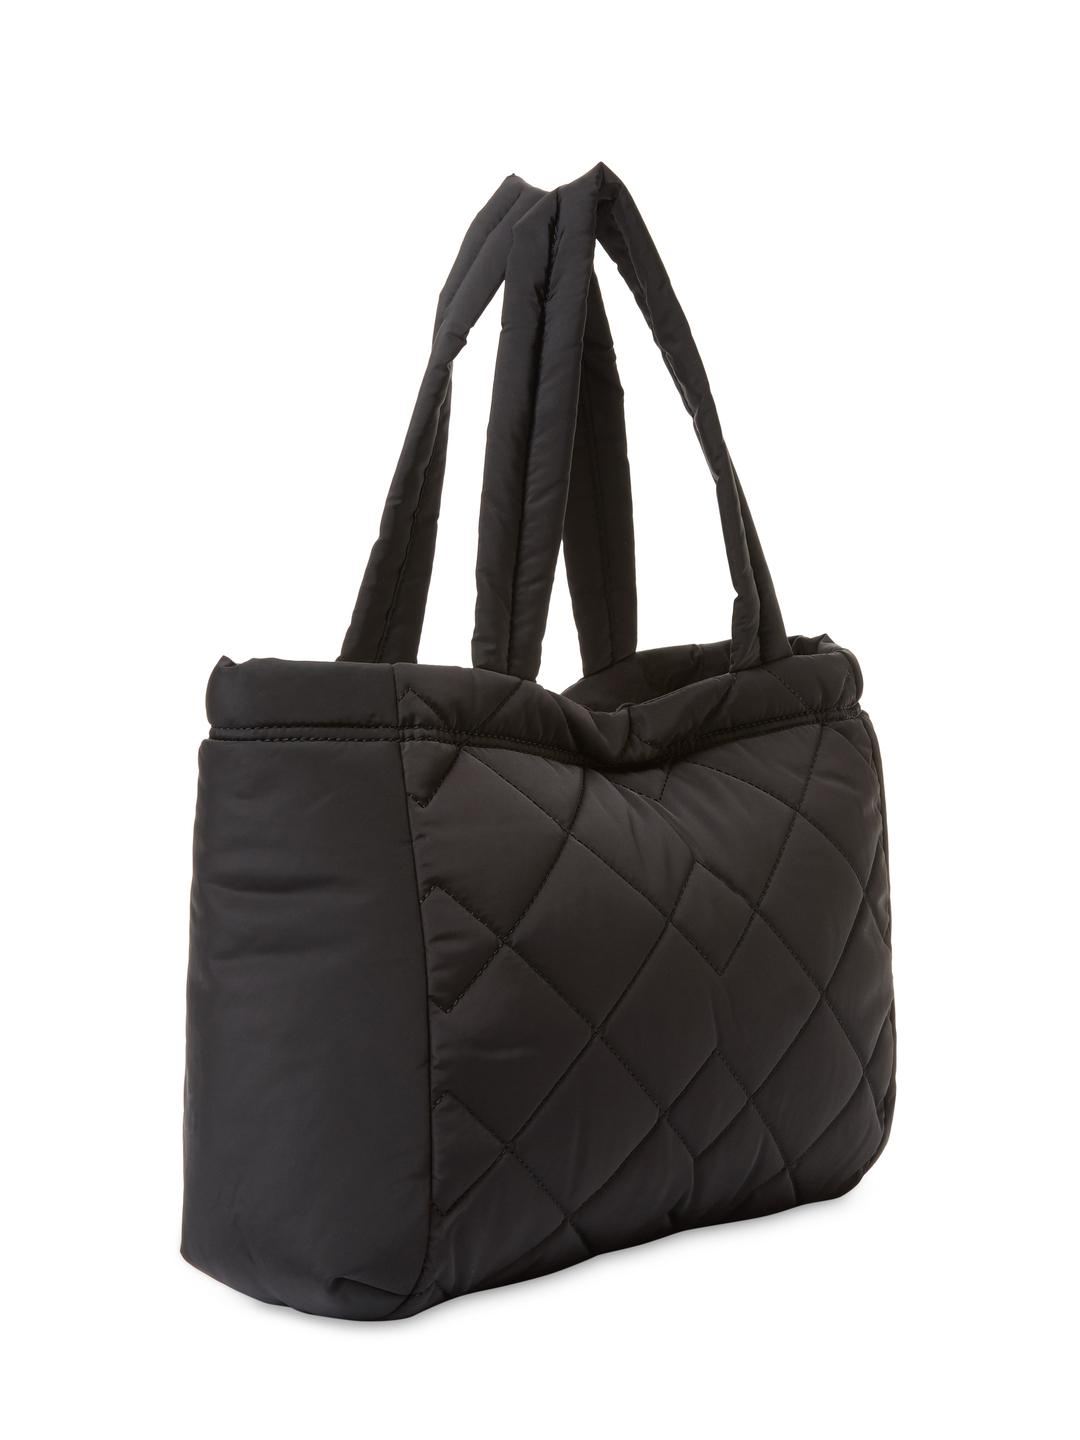 Marc Jacobs Synthetic Quilted Small Tote Bag in Black